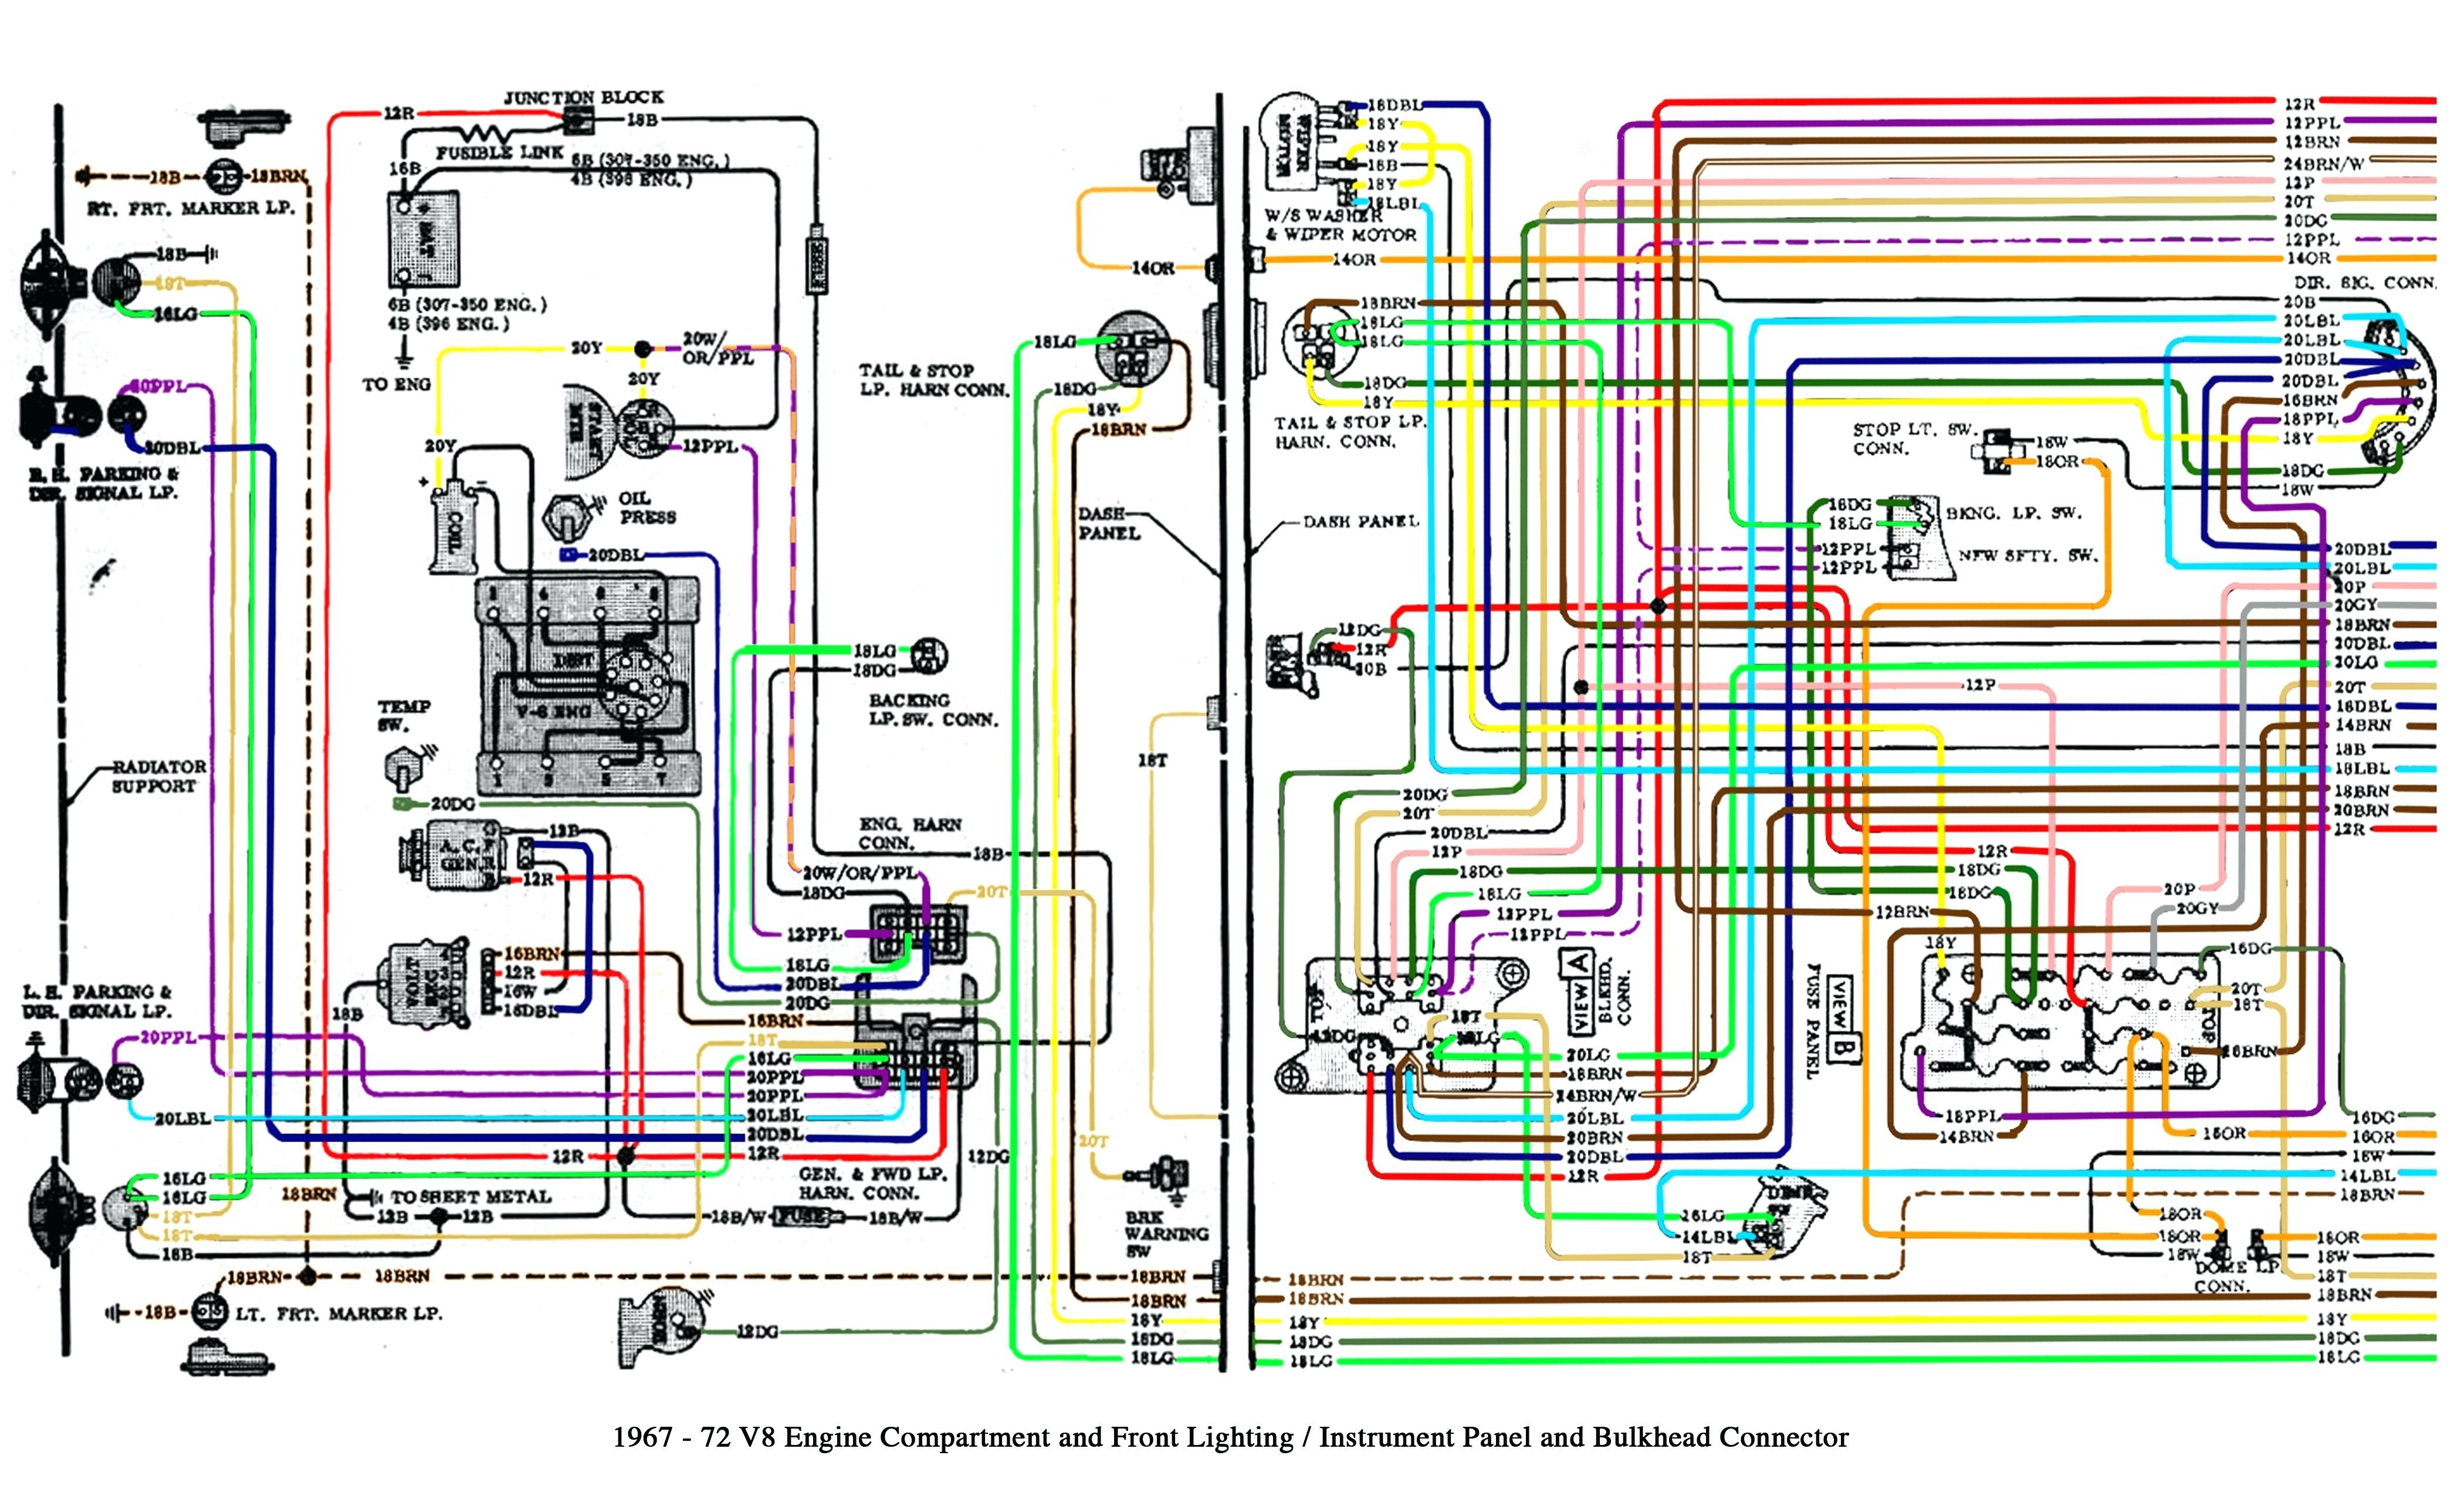 Collection Of Solutions 2000 Chevy S10 Stereo Wiring